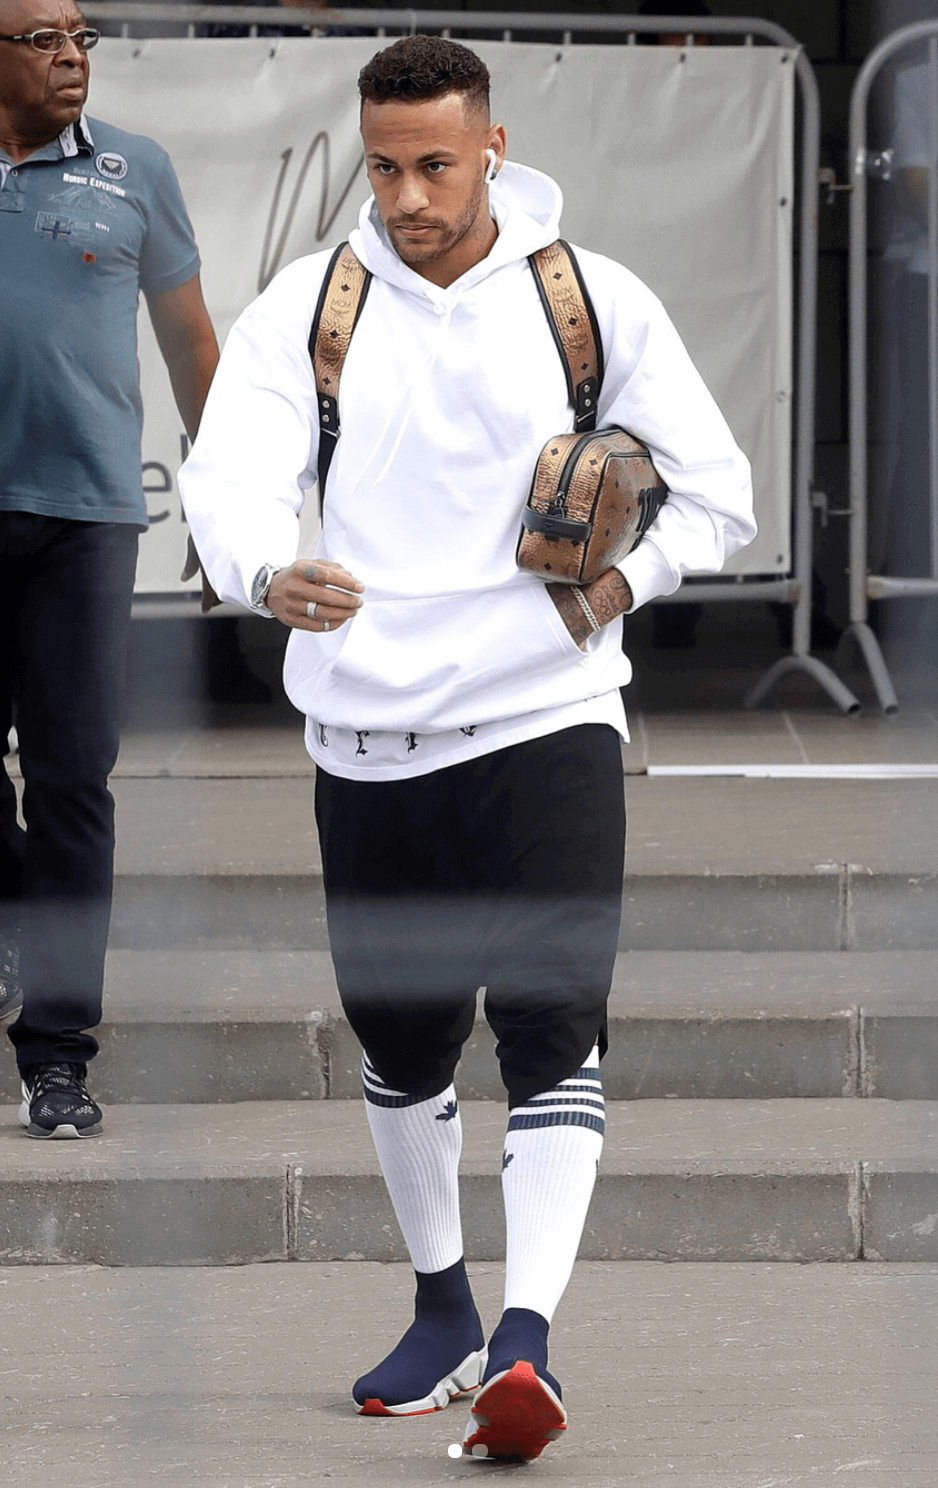 Neymar in the Balenciaga Speed Knit Sneakers